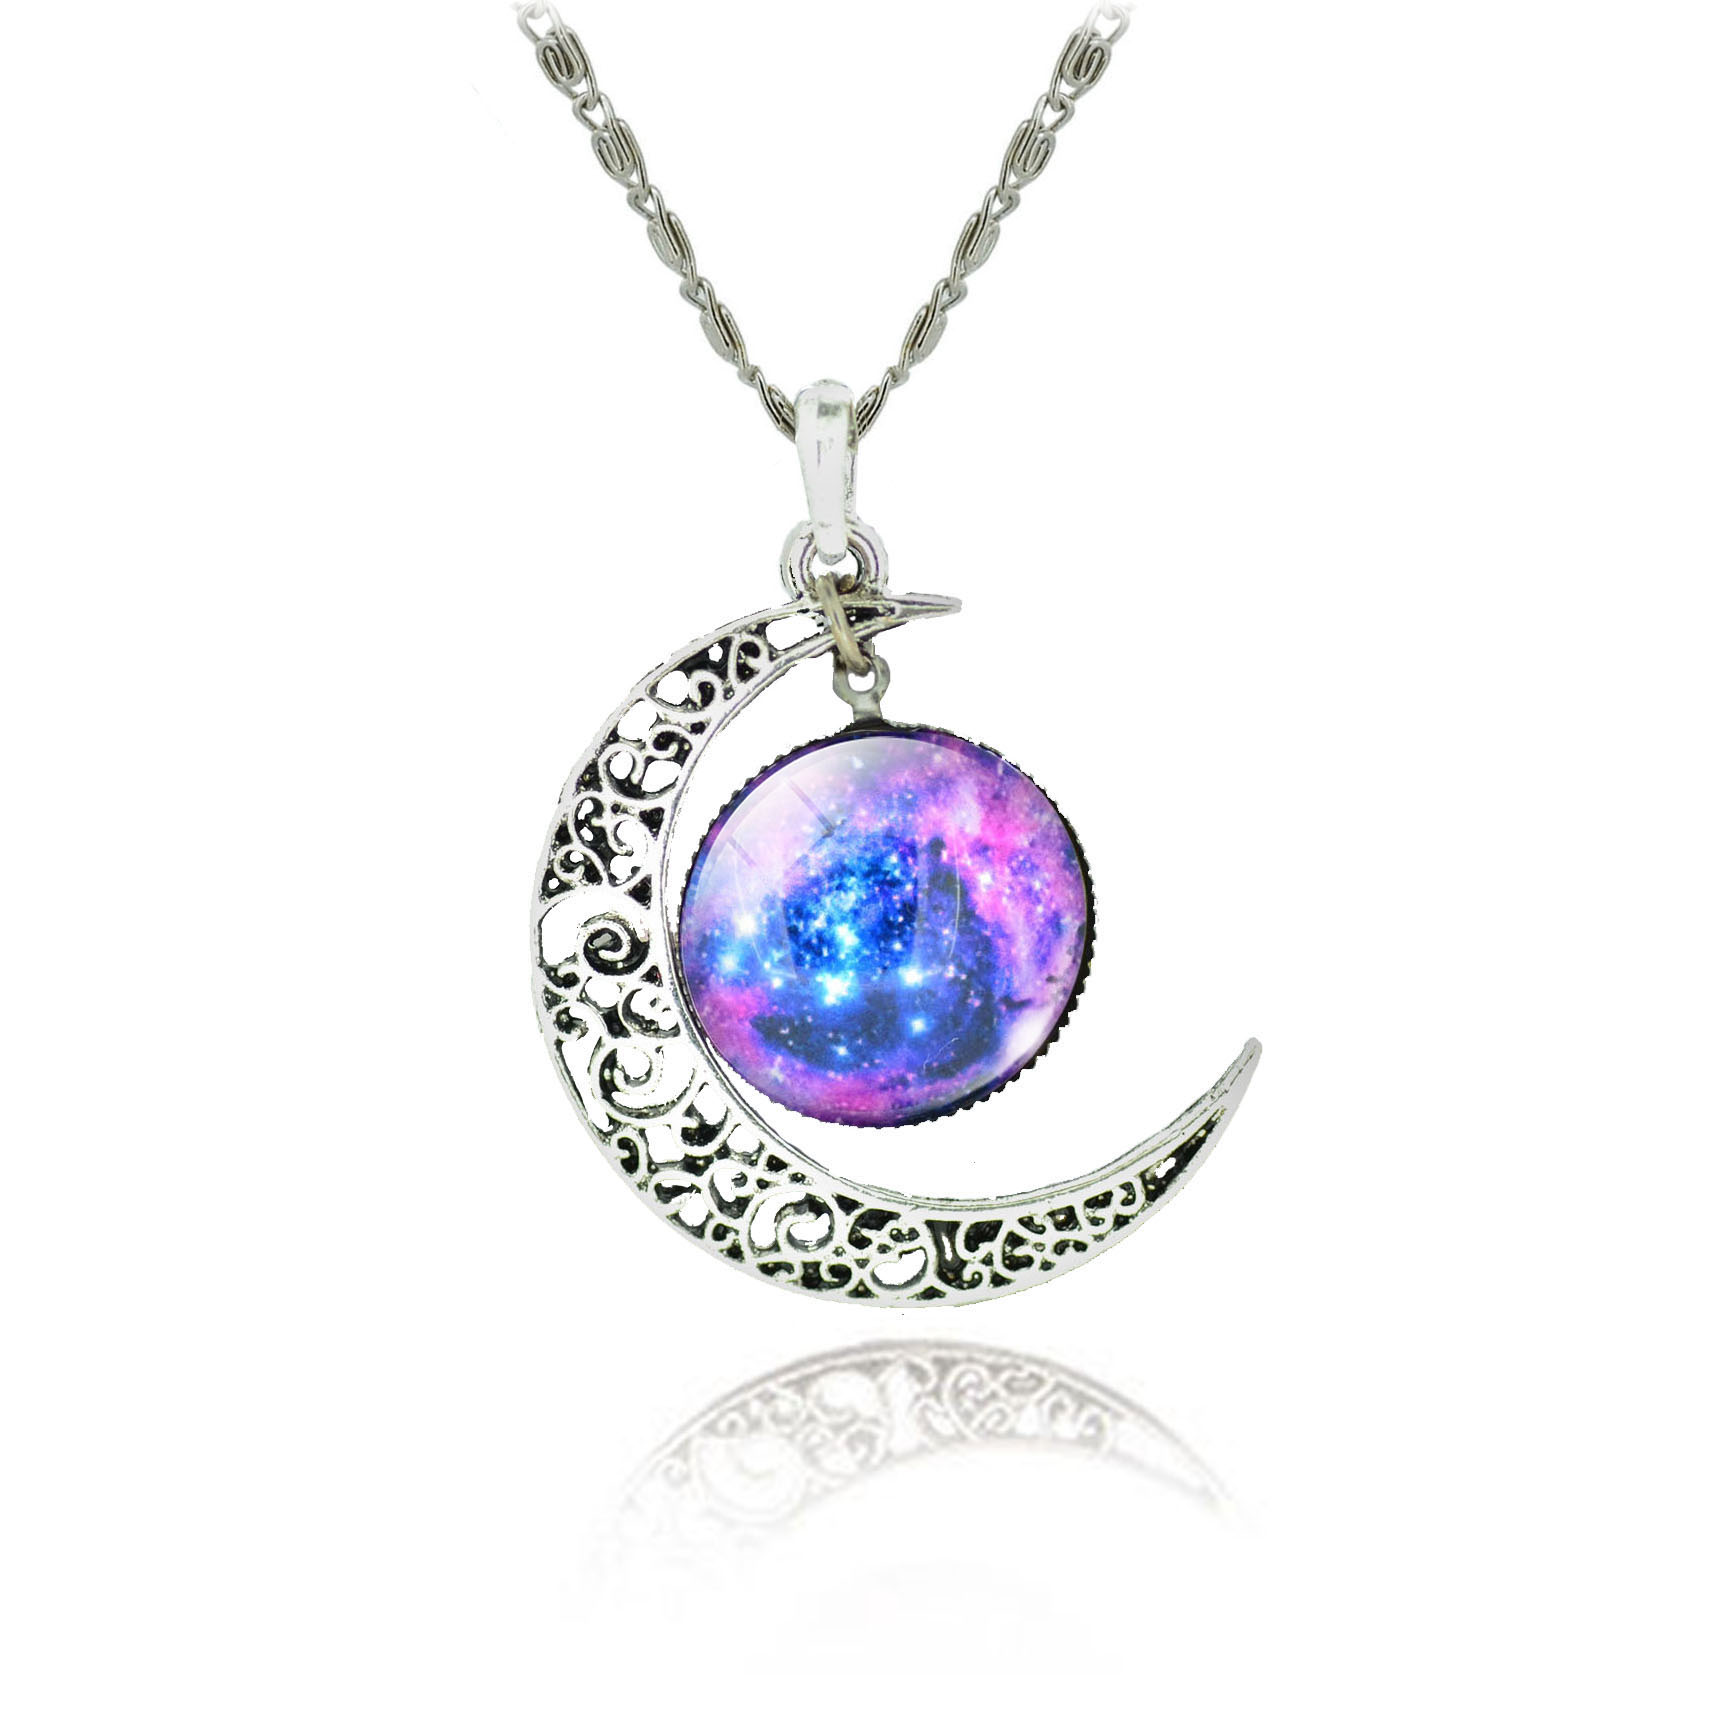 10 pcs/lot wholesale Silver Color Jewelry Fashion Moon Pendant Statement Necklace Glass Galaxy Collares Maxi Necklace for Women(China (Mainland))